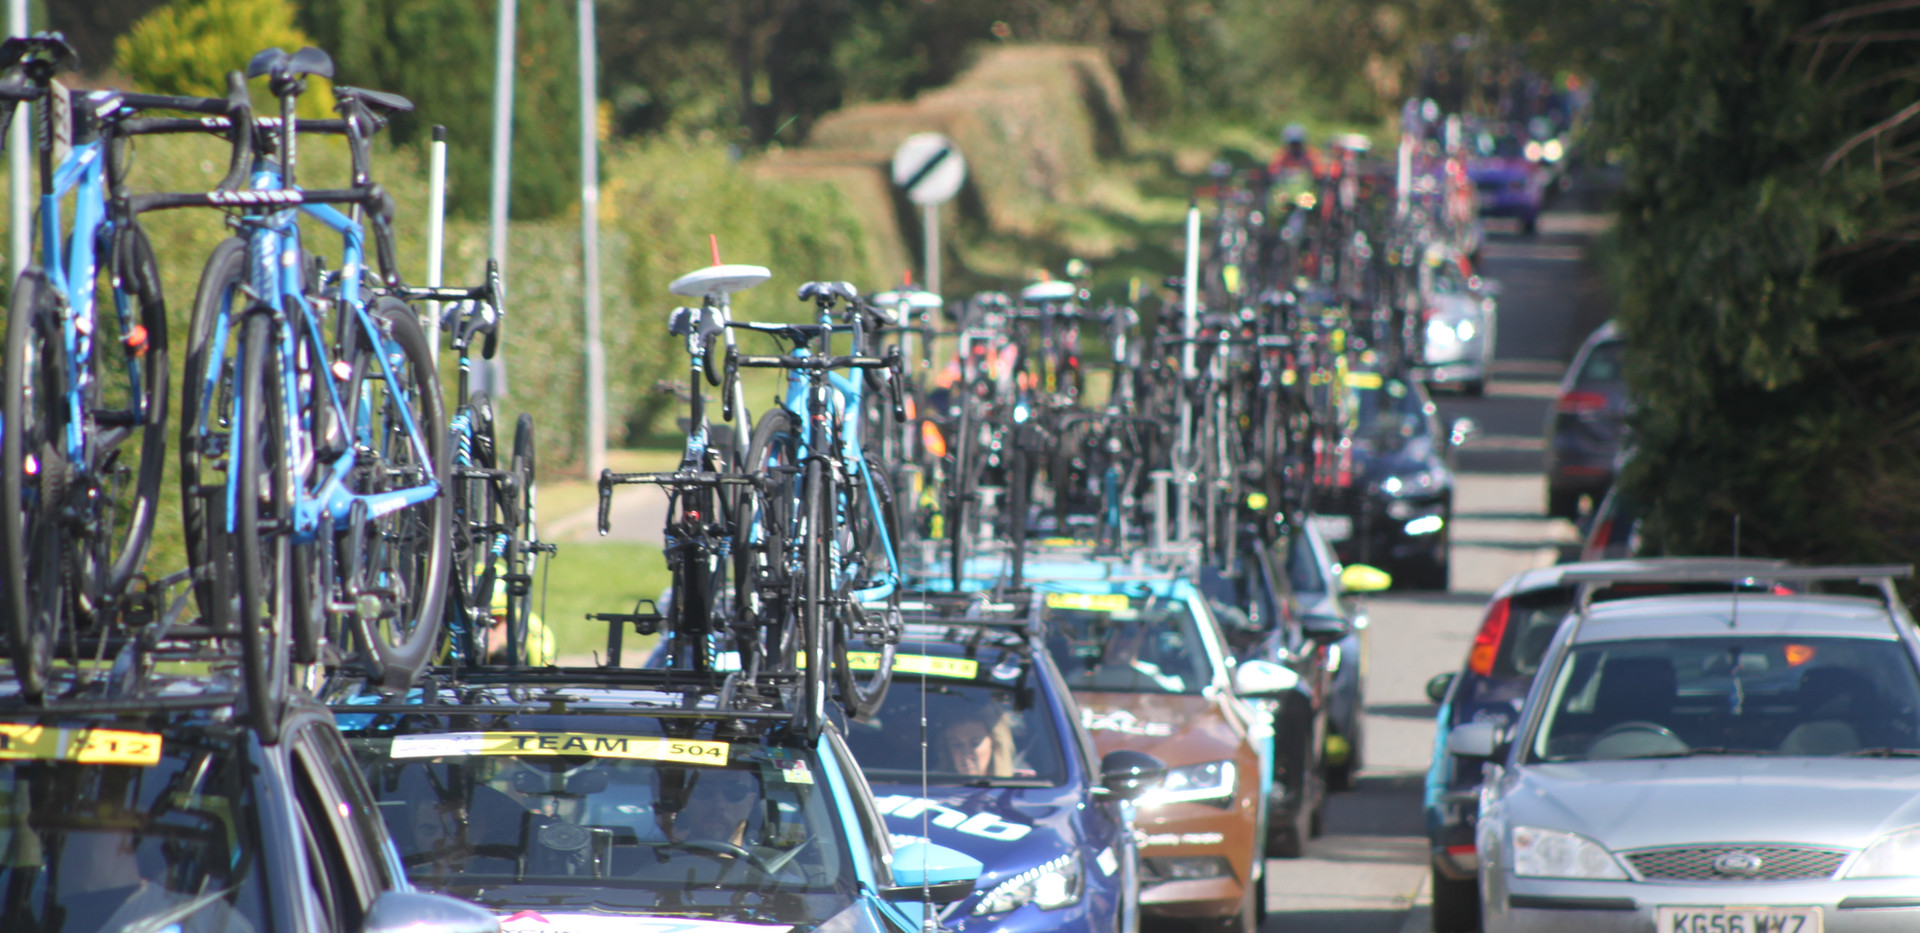 The Tour of Britain, September 2019